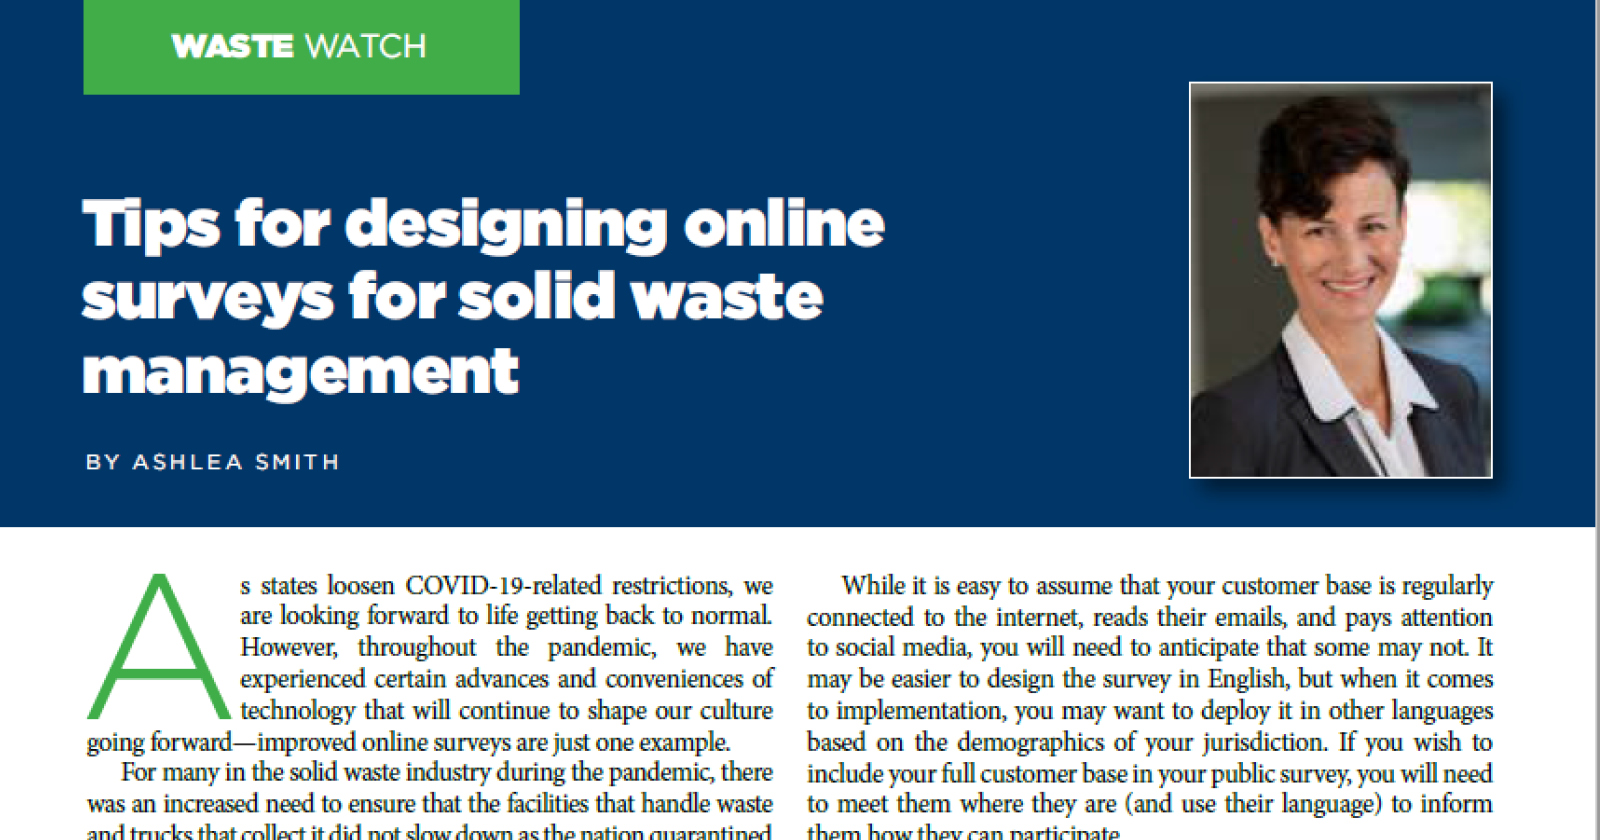 Online Surveys Tips for the Solid Waste Industry